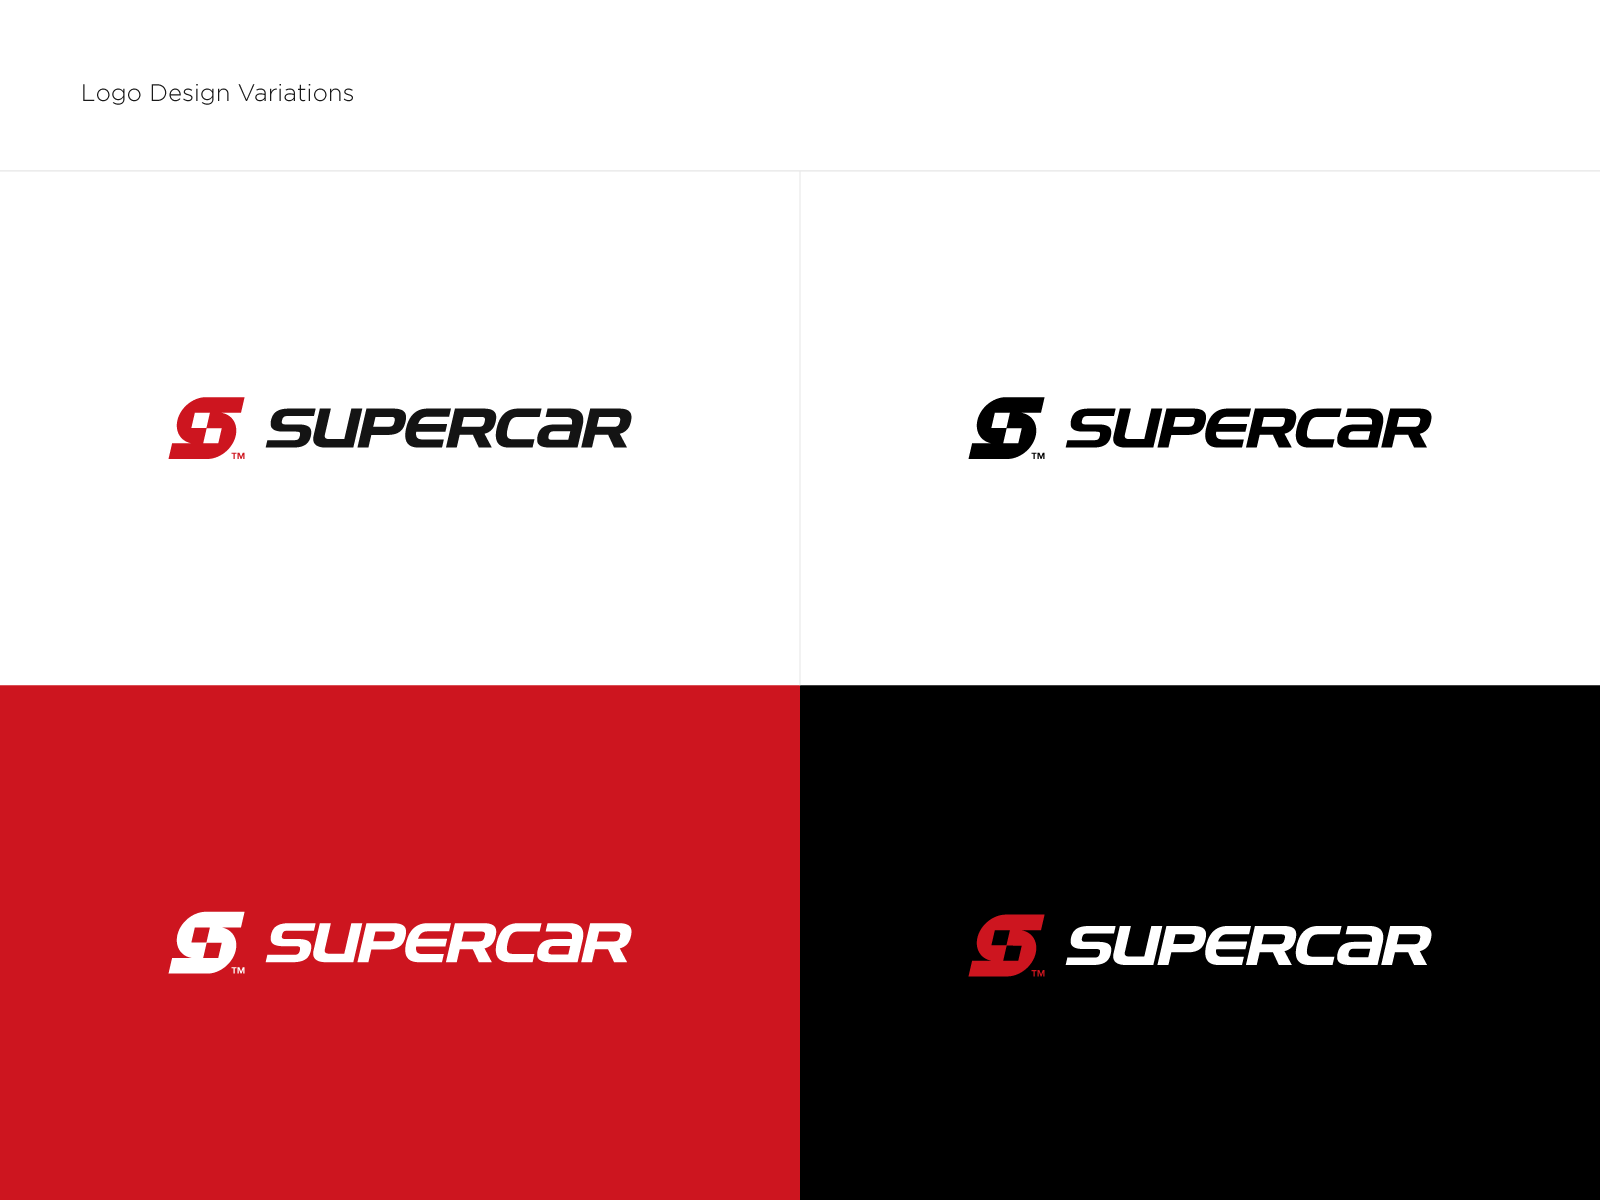 Supercar logo variations